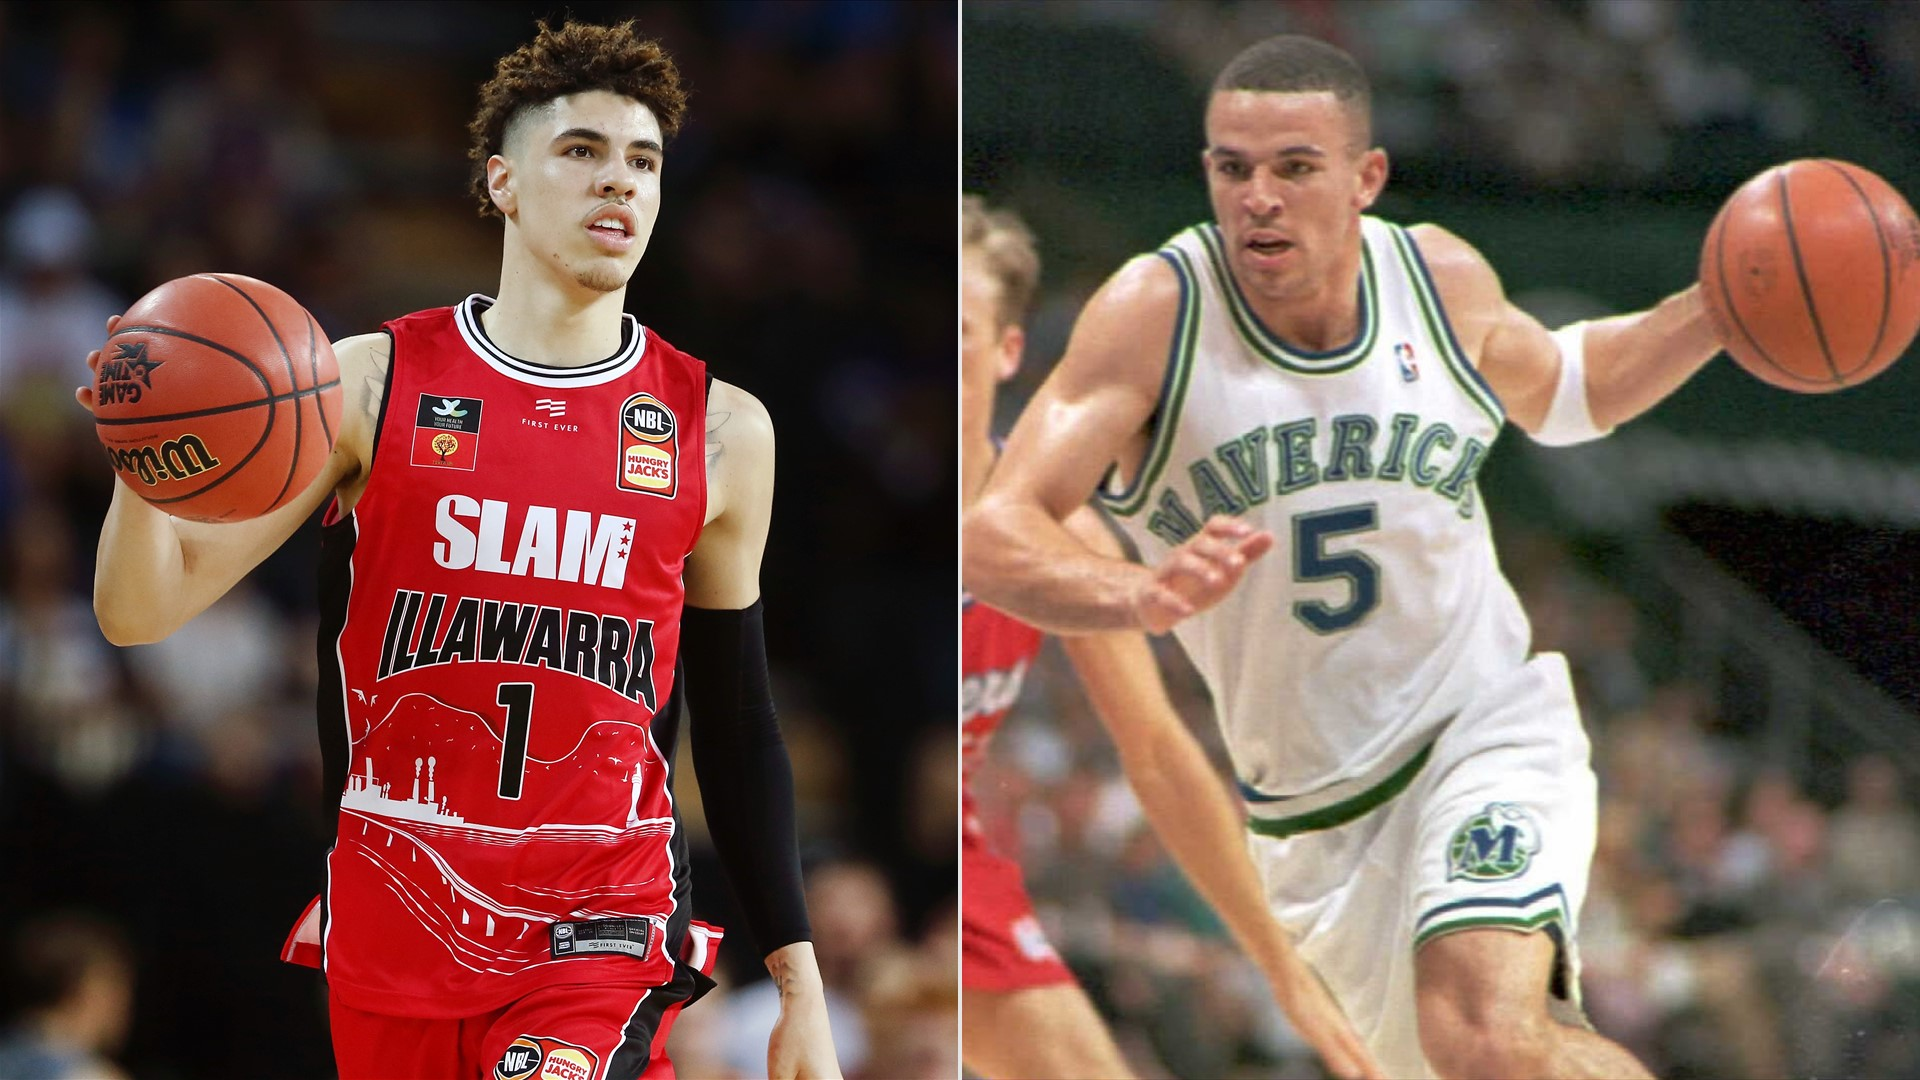 NBA Draft 2020: Player comparisons for the top prospects in the 2020 draft class